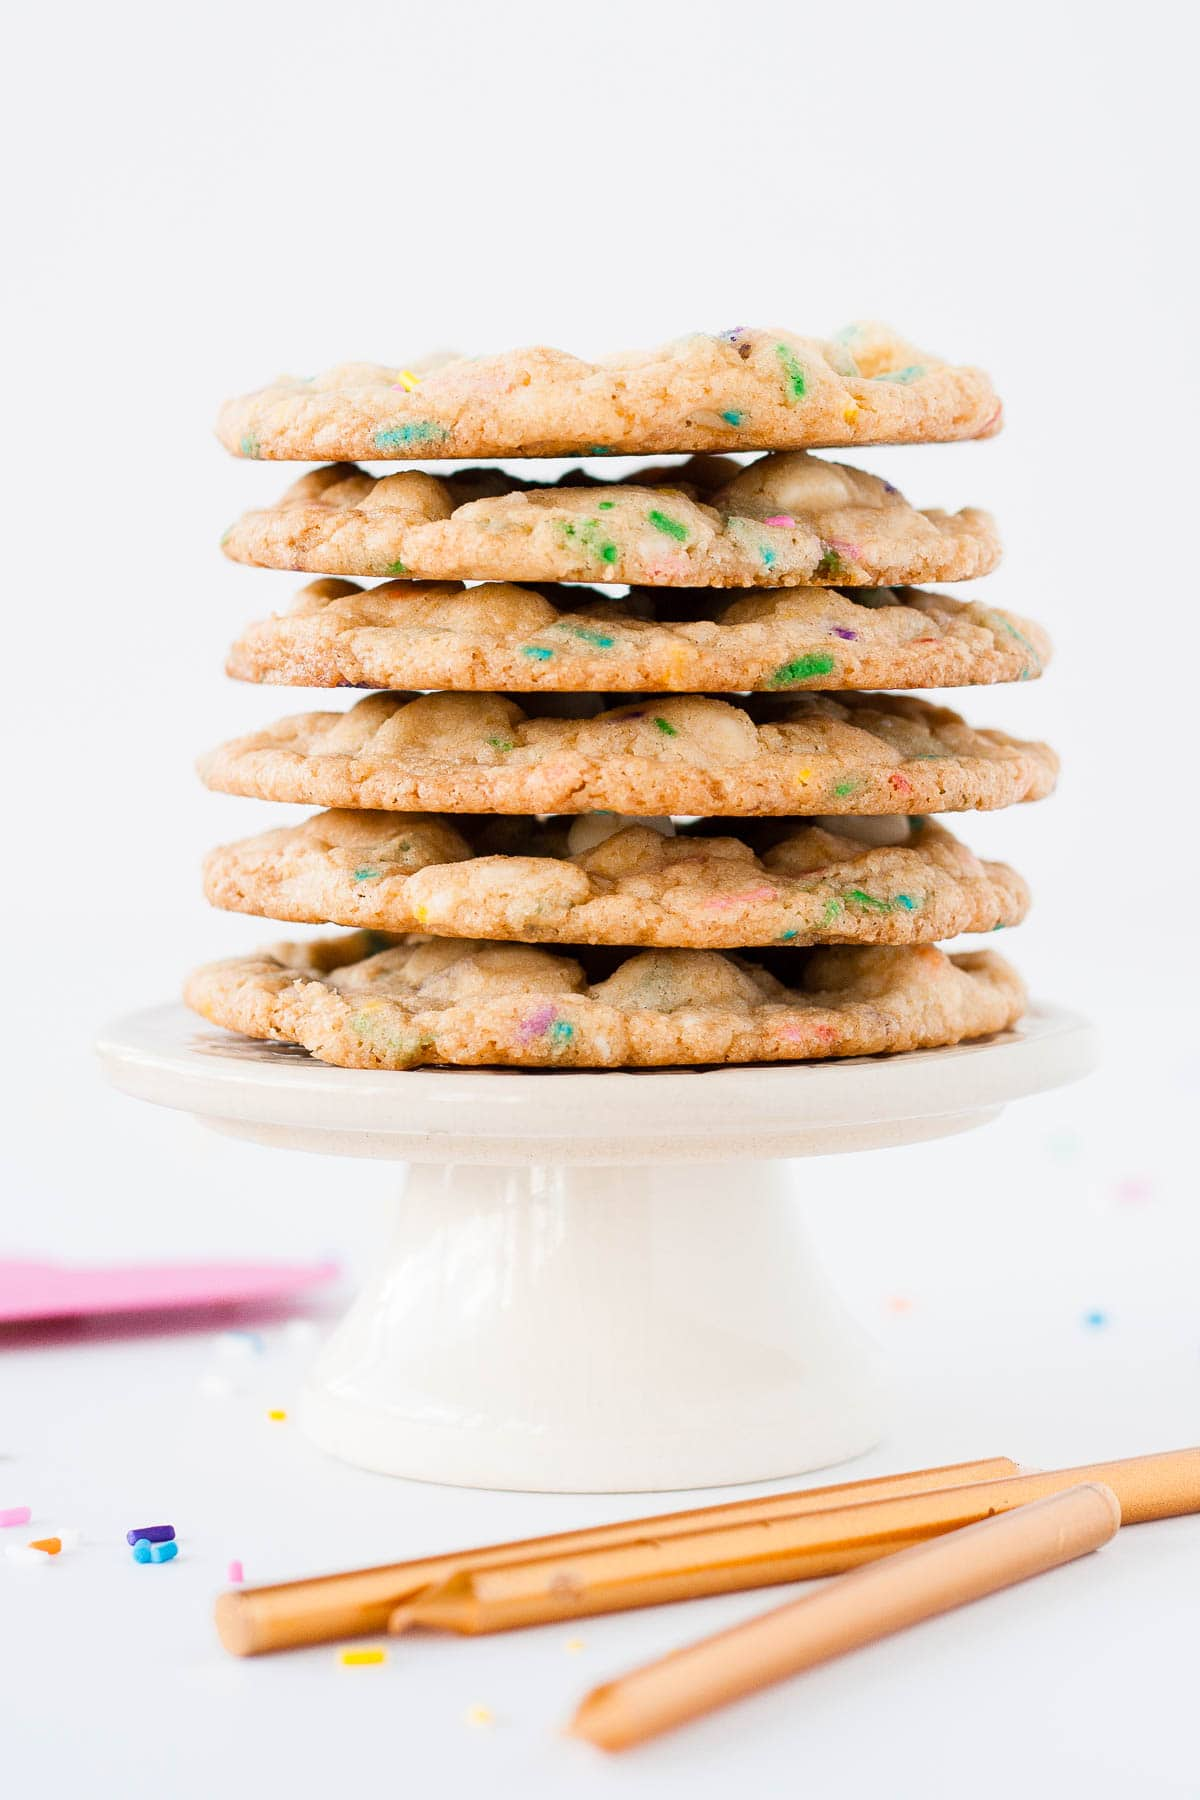 Stack of cookies on a small cupcake stand.